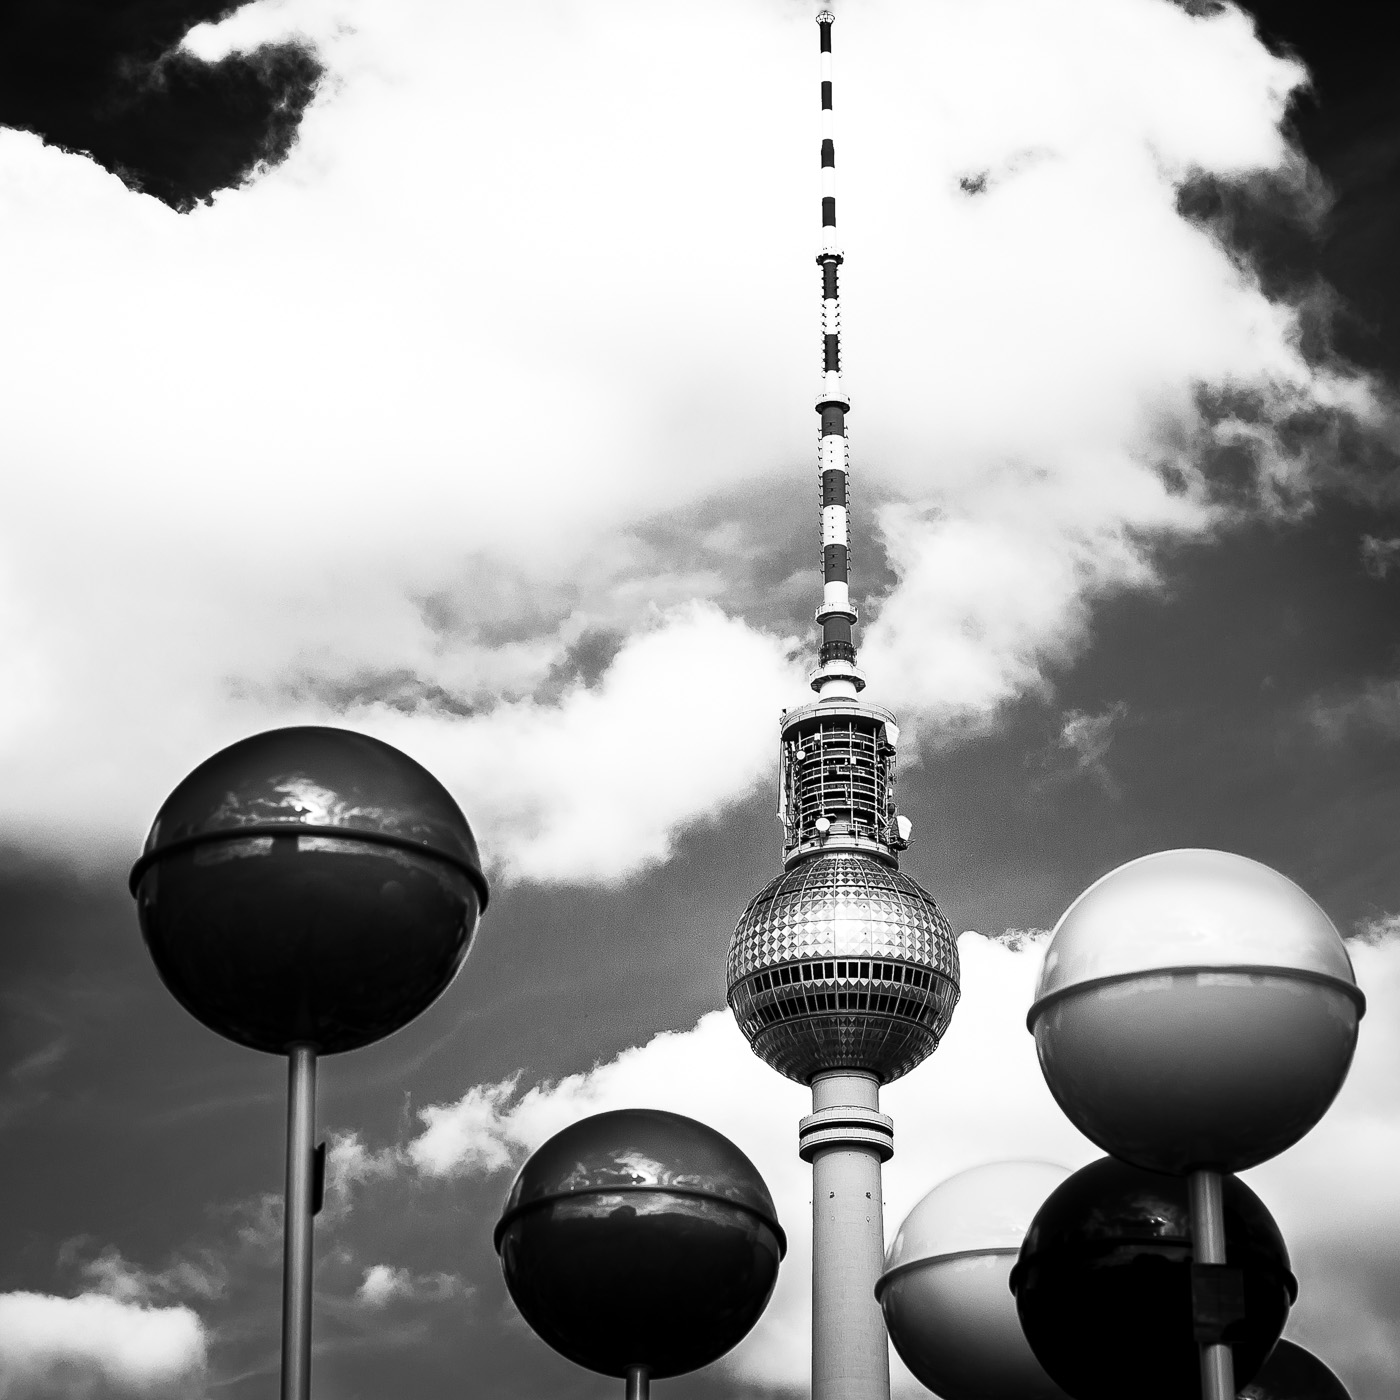 Spheres around the tower